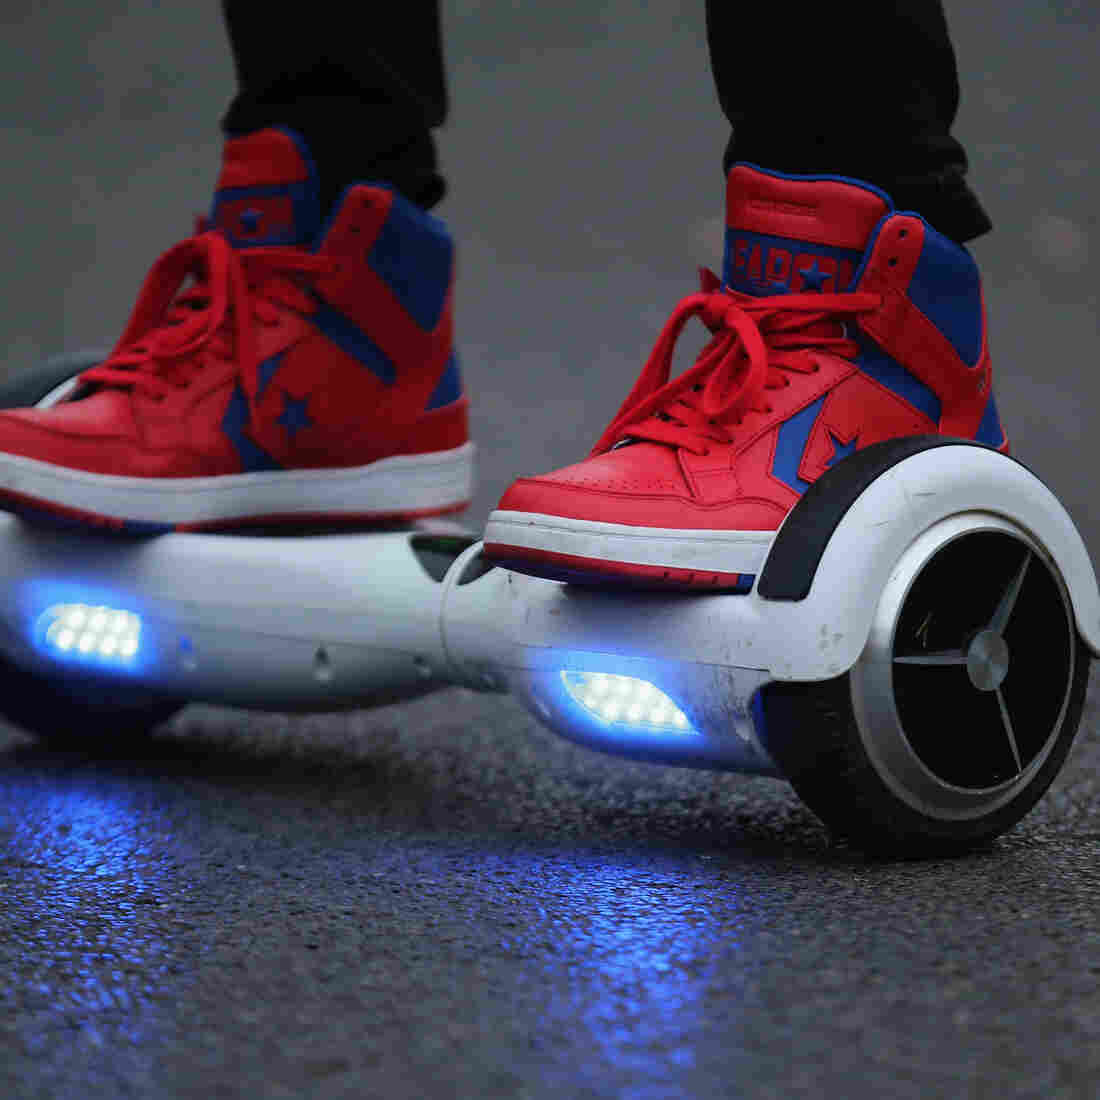 Hoverboards Put On No-Fly List, As Airlines Cite Fire Concerns